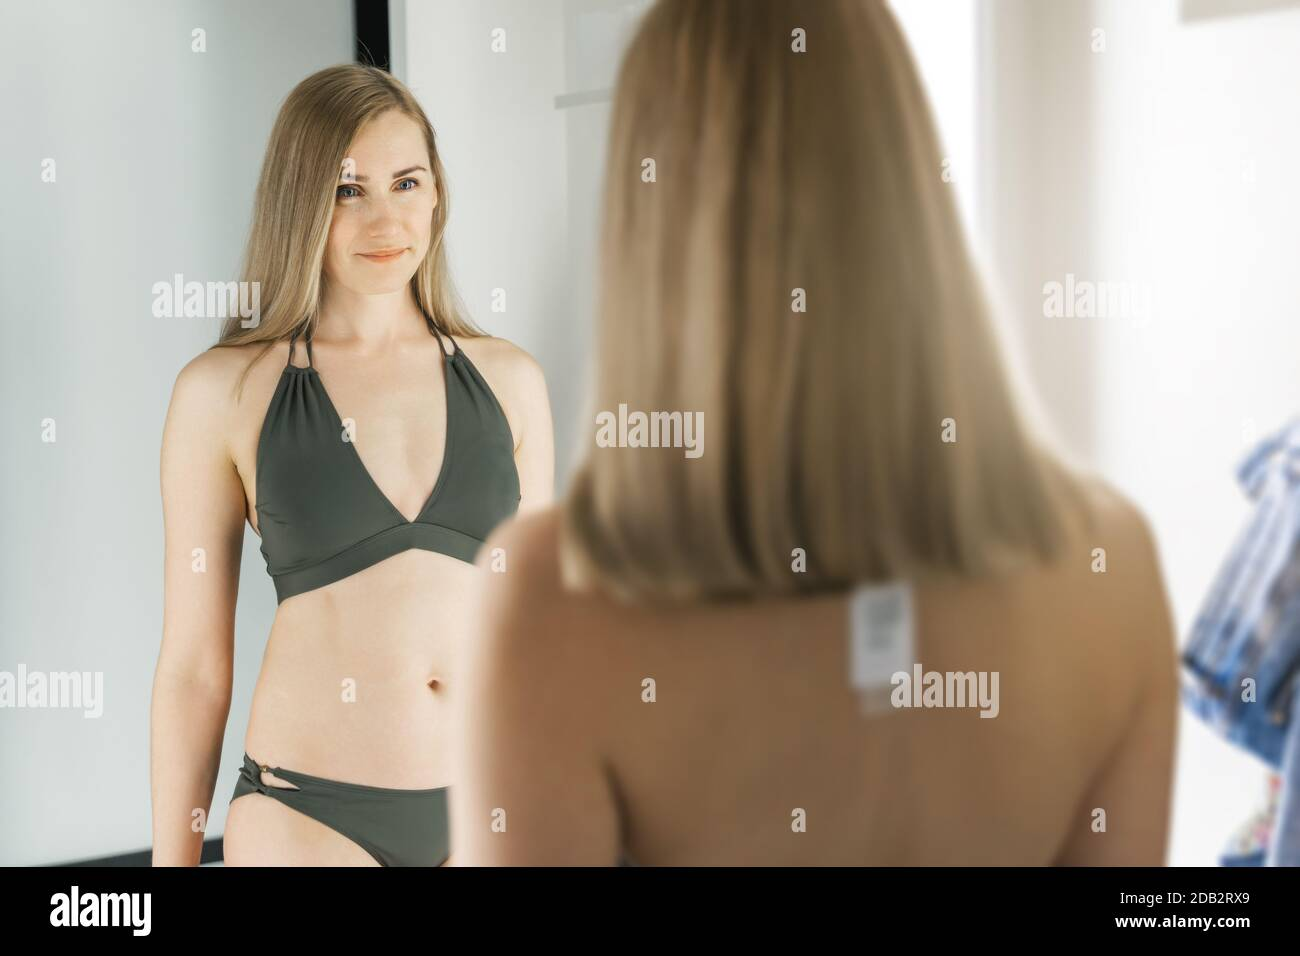 Girls in dressing room try on fashionable new bikinis